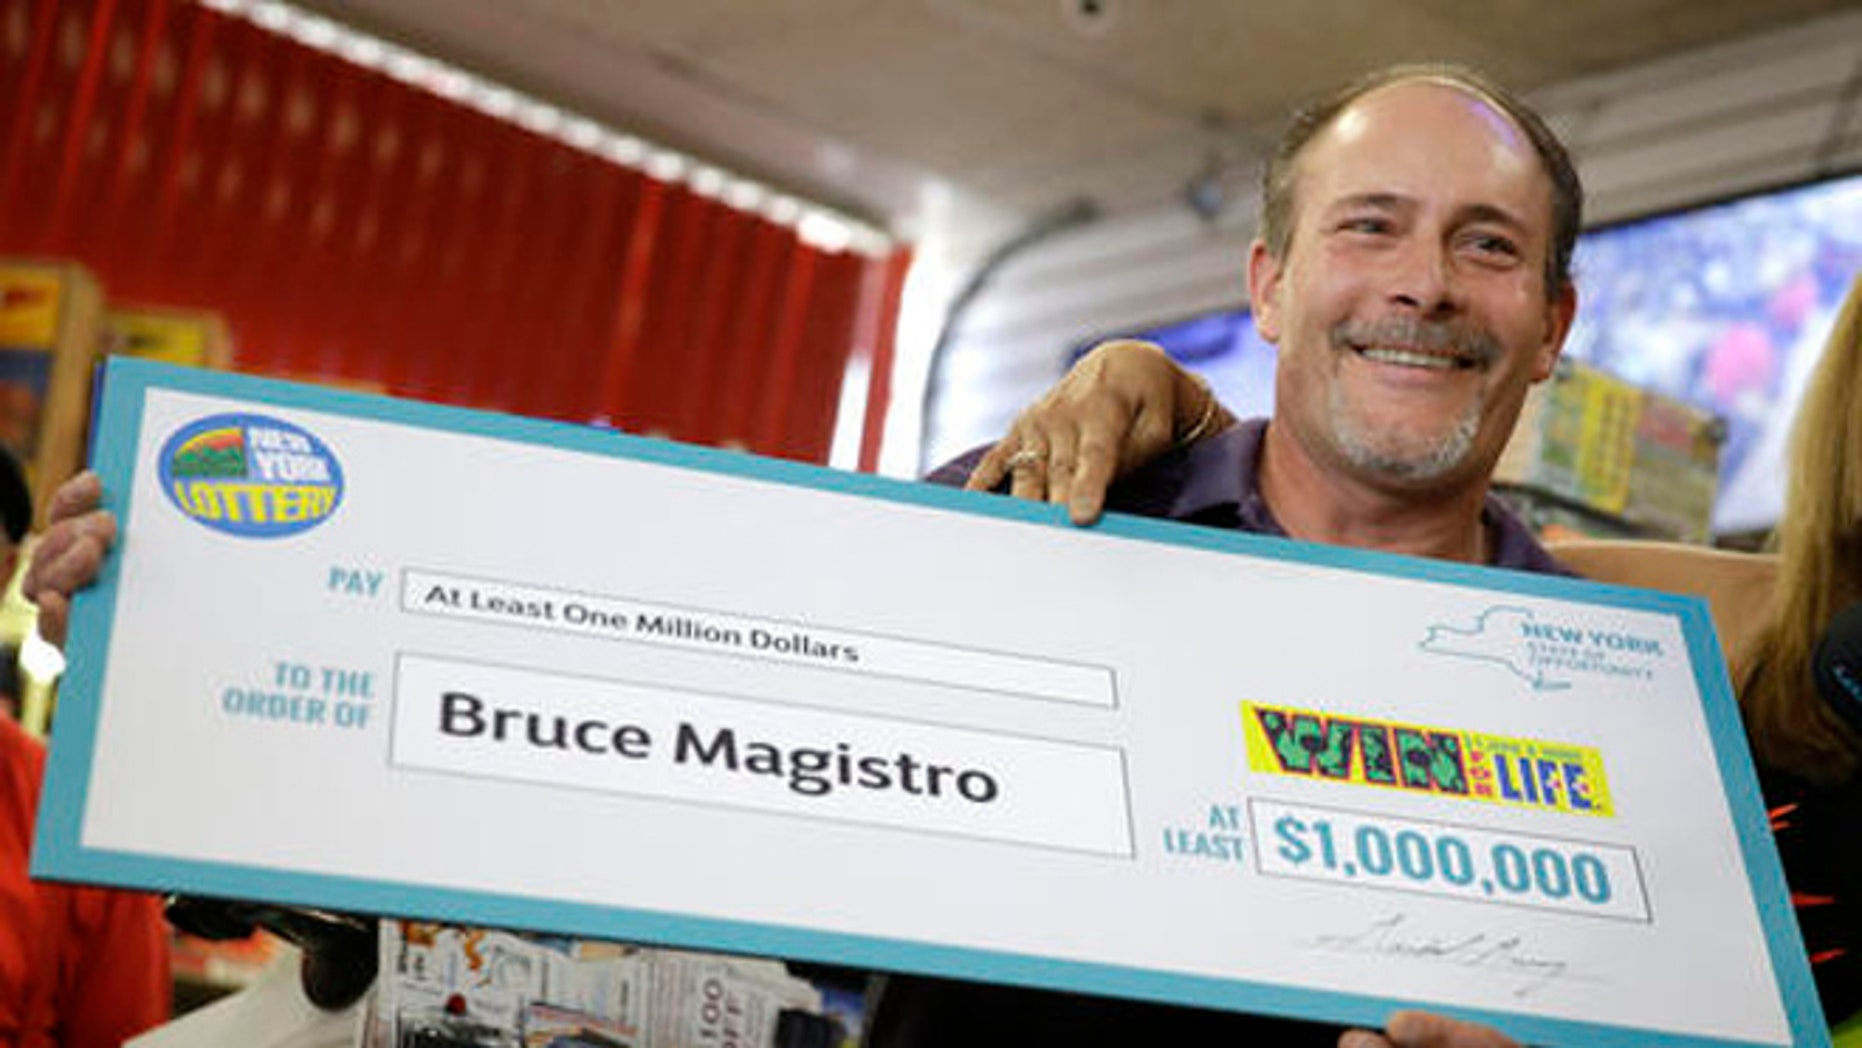 Bruce Magistro holds up a check while talking to reporters about winning $1 million in the New York Lottery for a second time during a news conference in Babylon, N.Y., Wednesday, May 11, 2016.